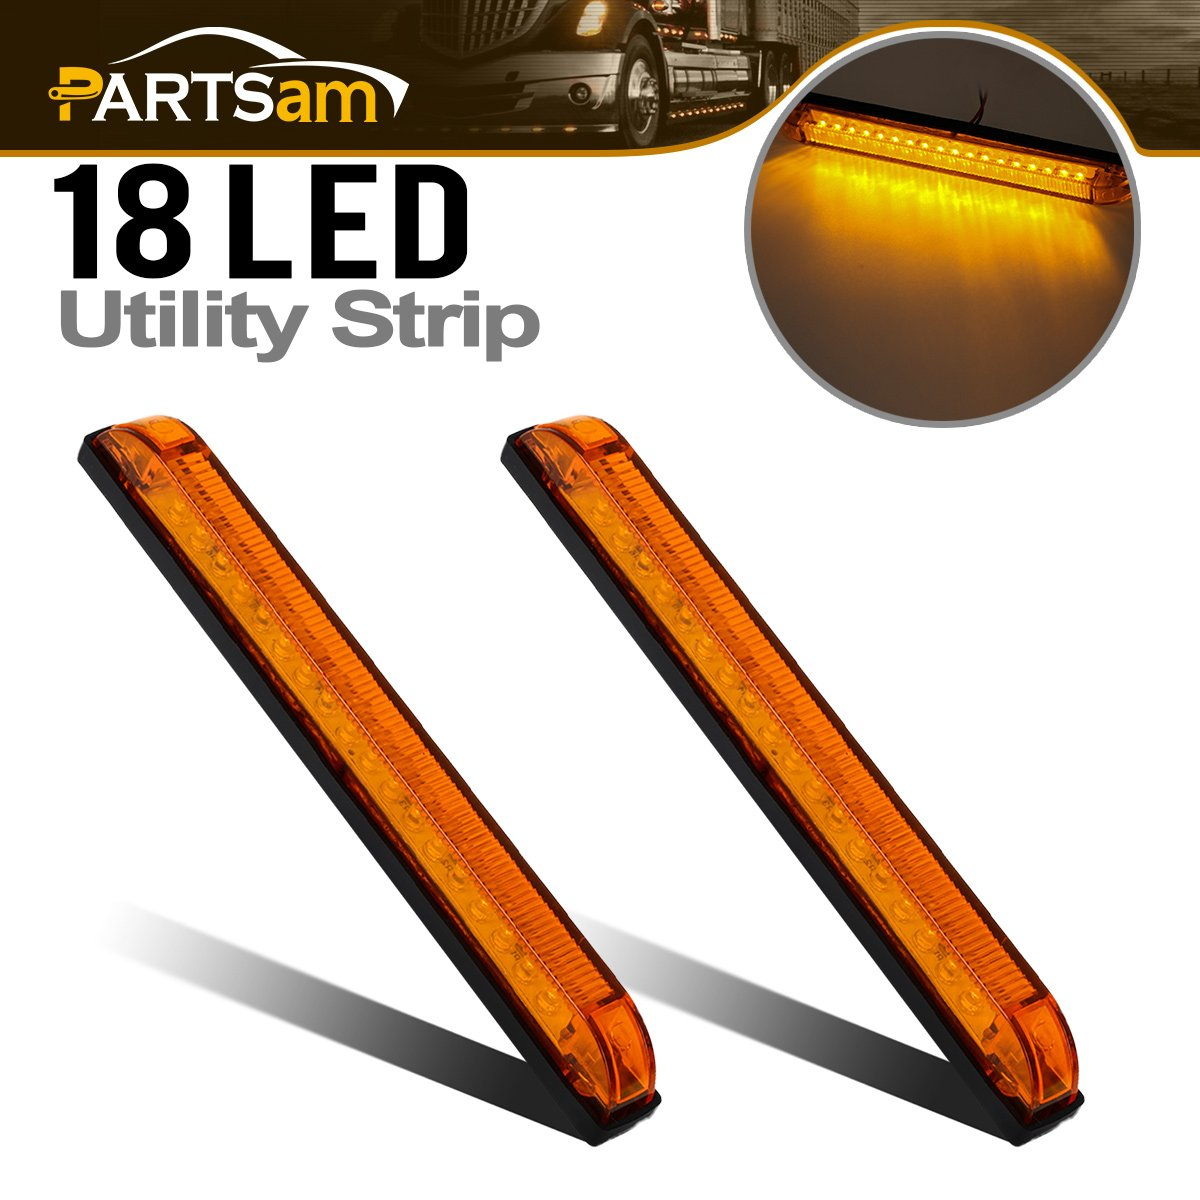 8' x 1' LED Utility Strip Light Amber Functional/Decoration Use Sealed 18LED 2pcs, 8 Inch Amber Boat Marine Led Strip Bar Turn Signal Parking Lights Partsam 4333018435